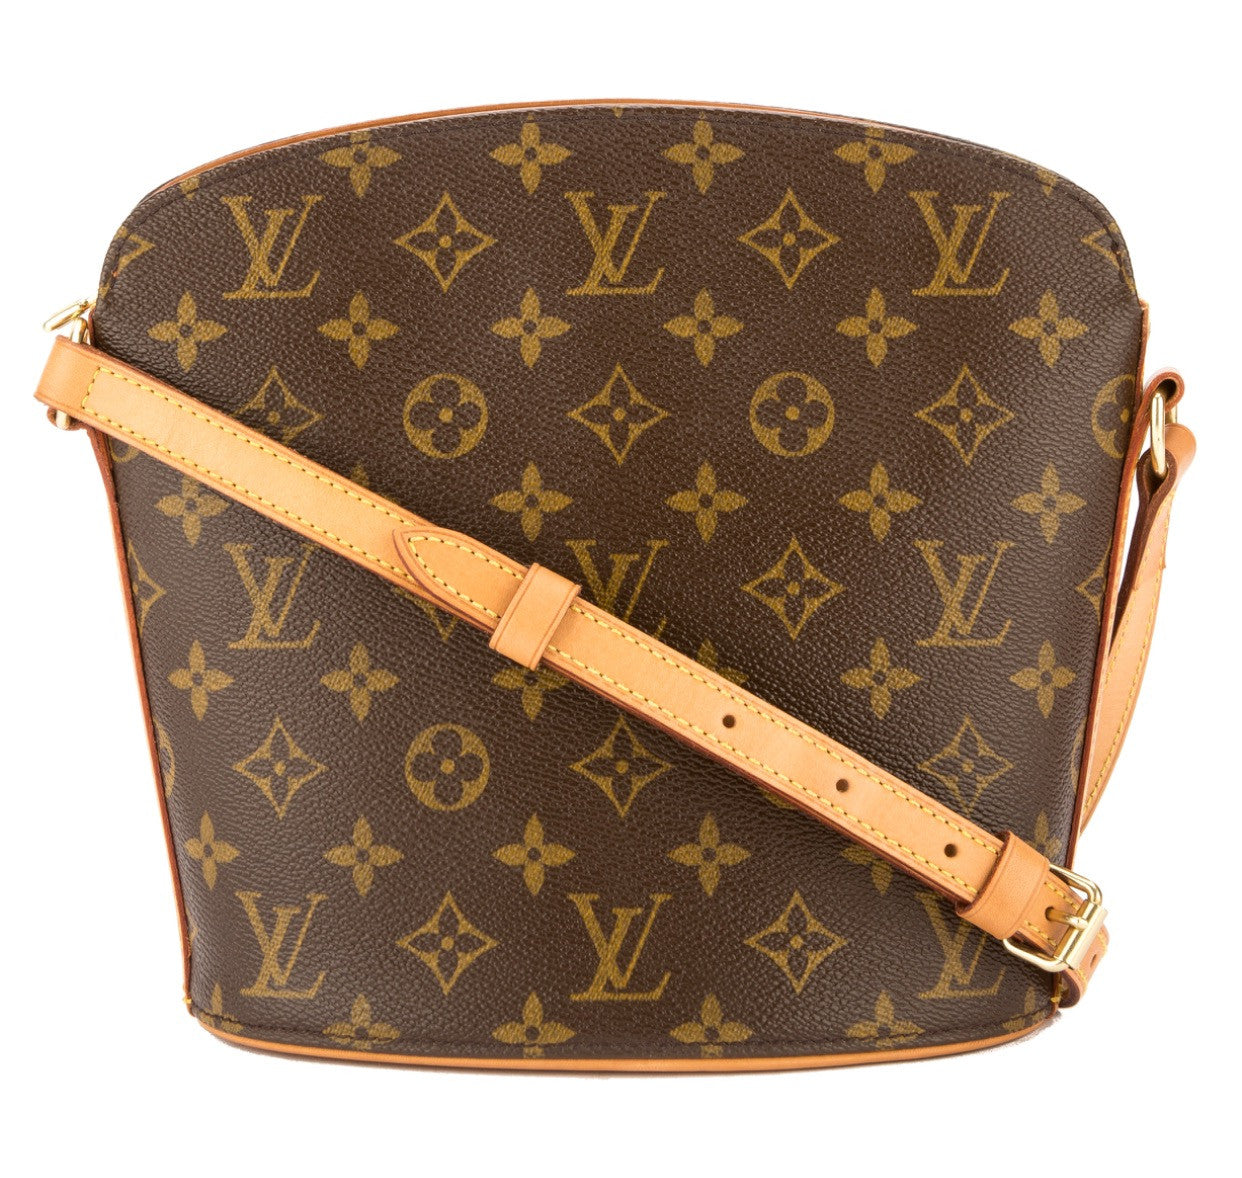 LOUIS VUITTON Drouot Monogram Crossbody Bag